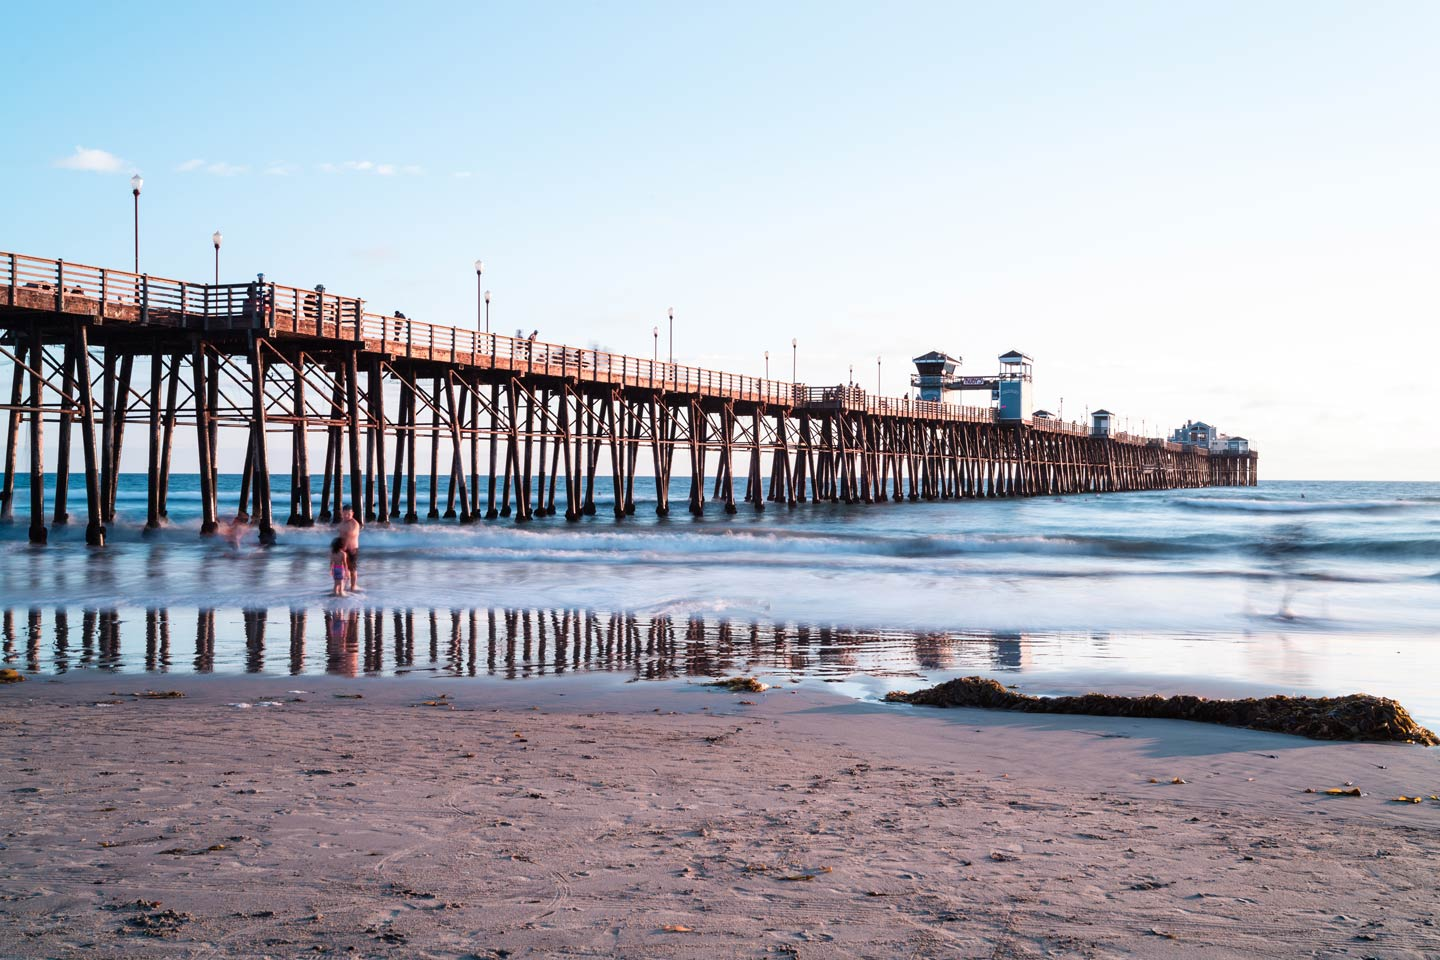 A view of the iconic Oceanside Pier from the beach